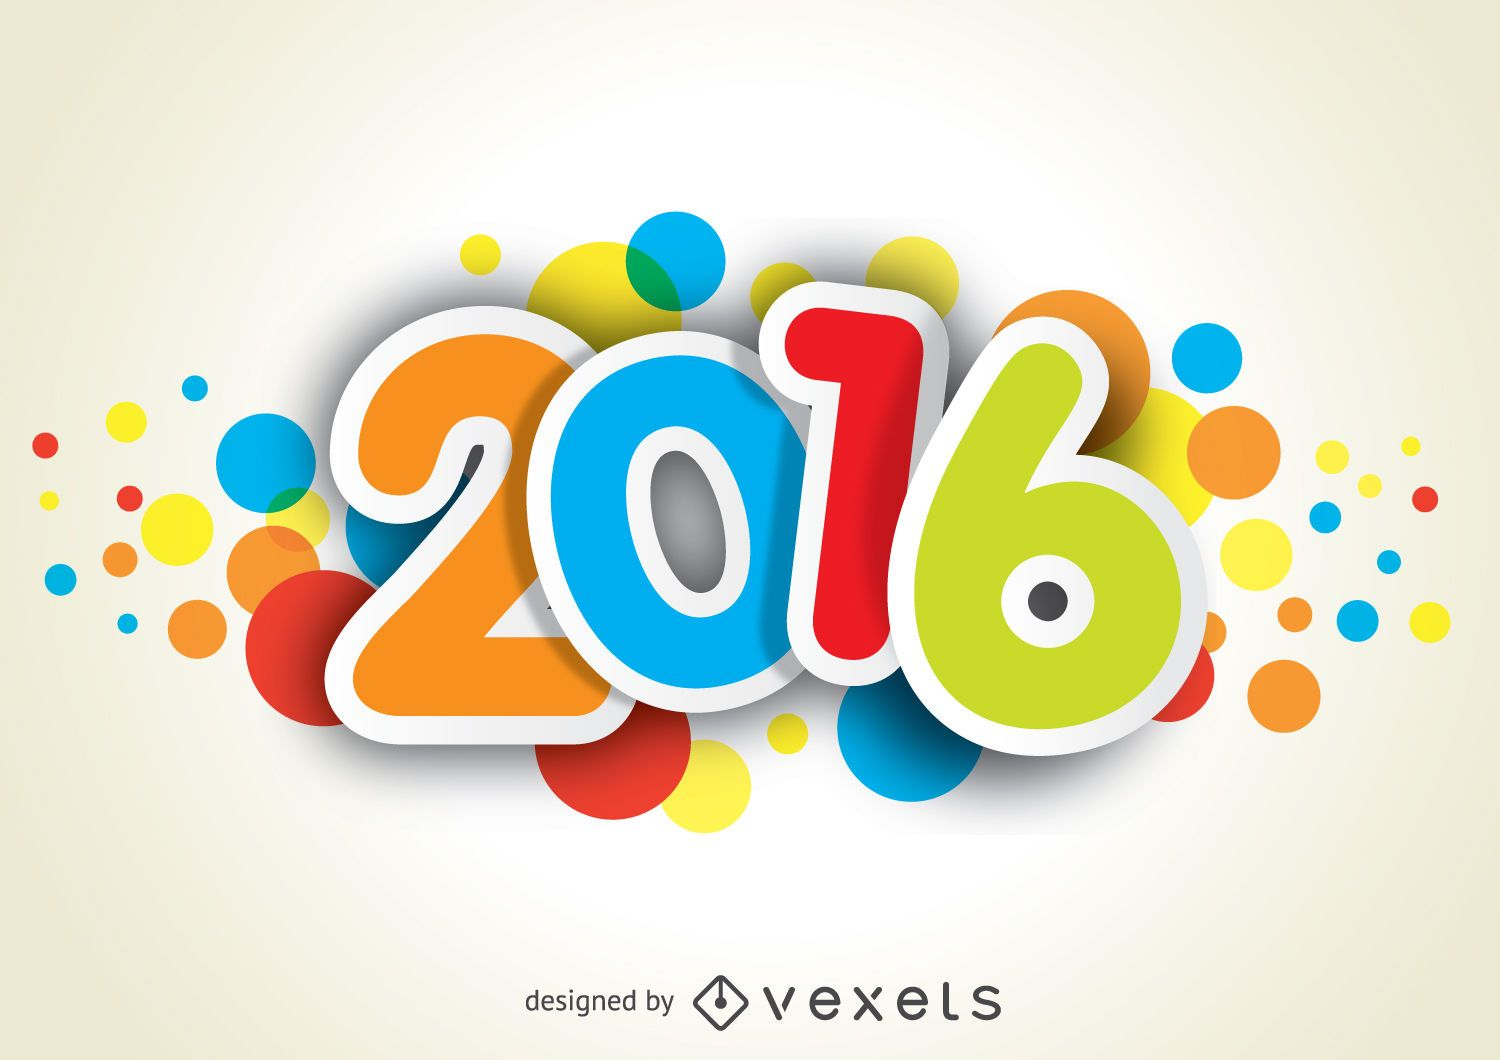 Funny and colorful 2016 new year